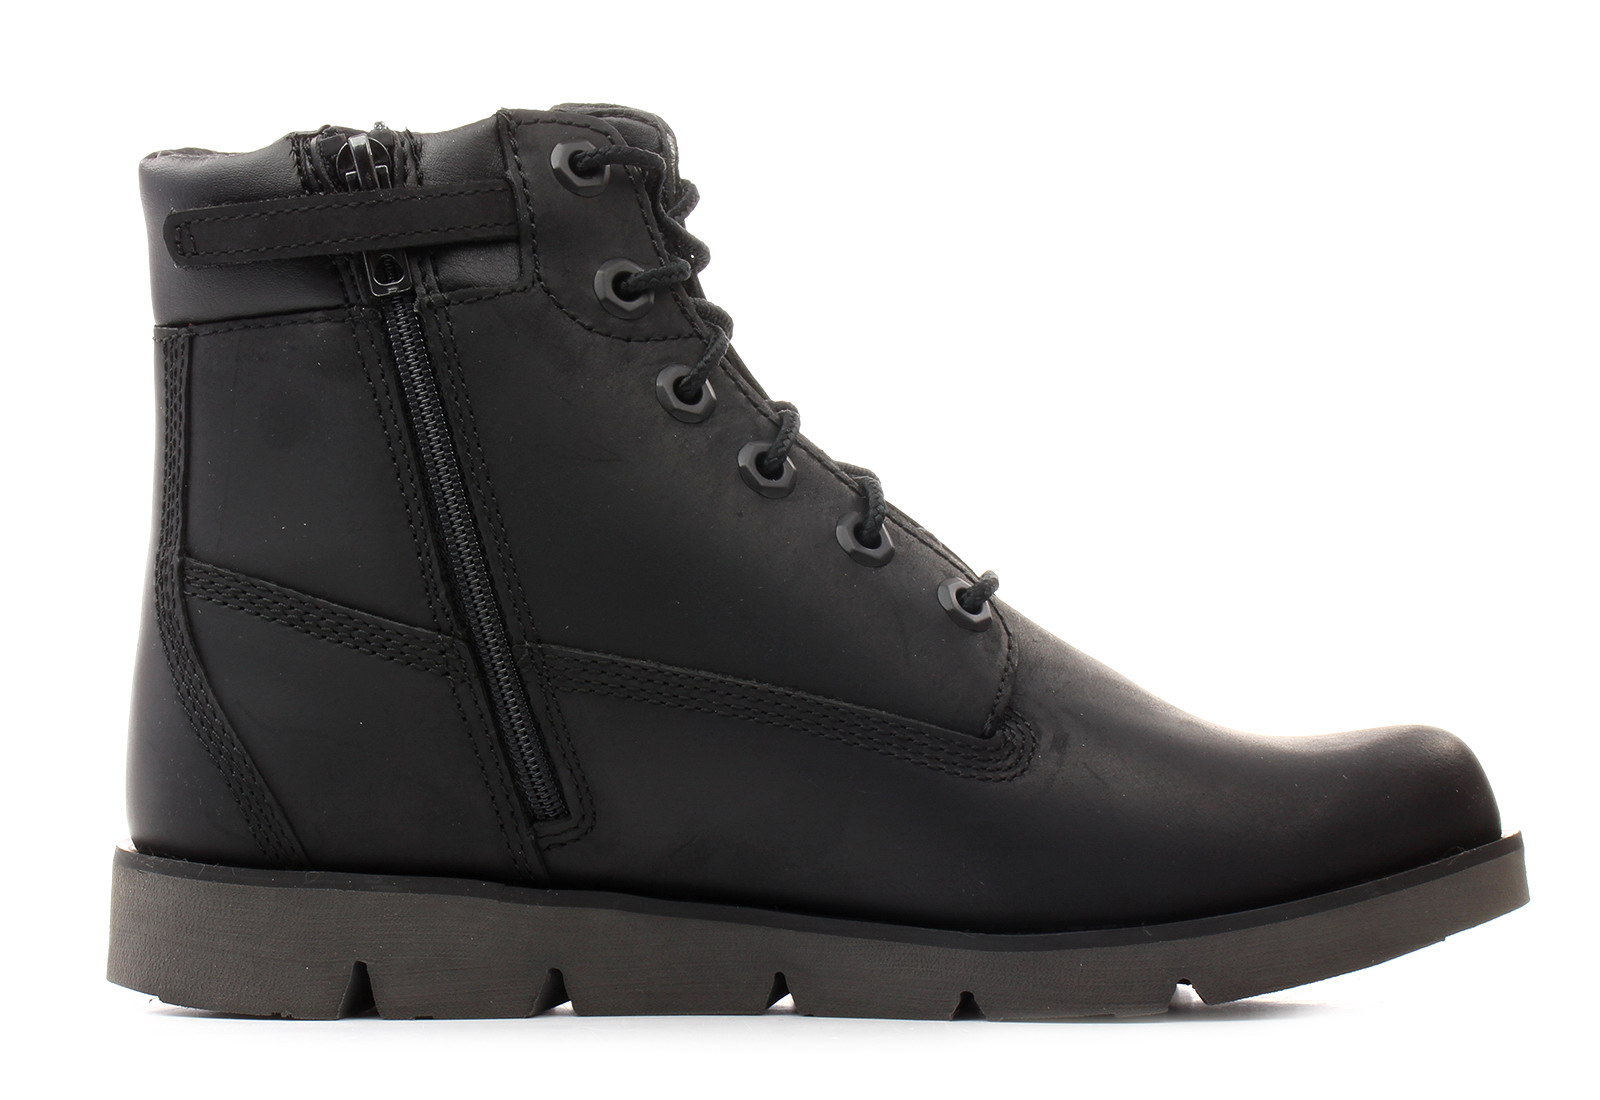 Timberland Boots Radford 6in Boot A1vyk Blk Online